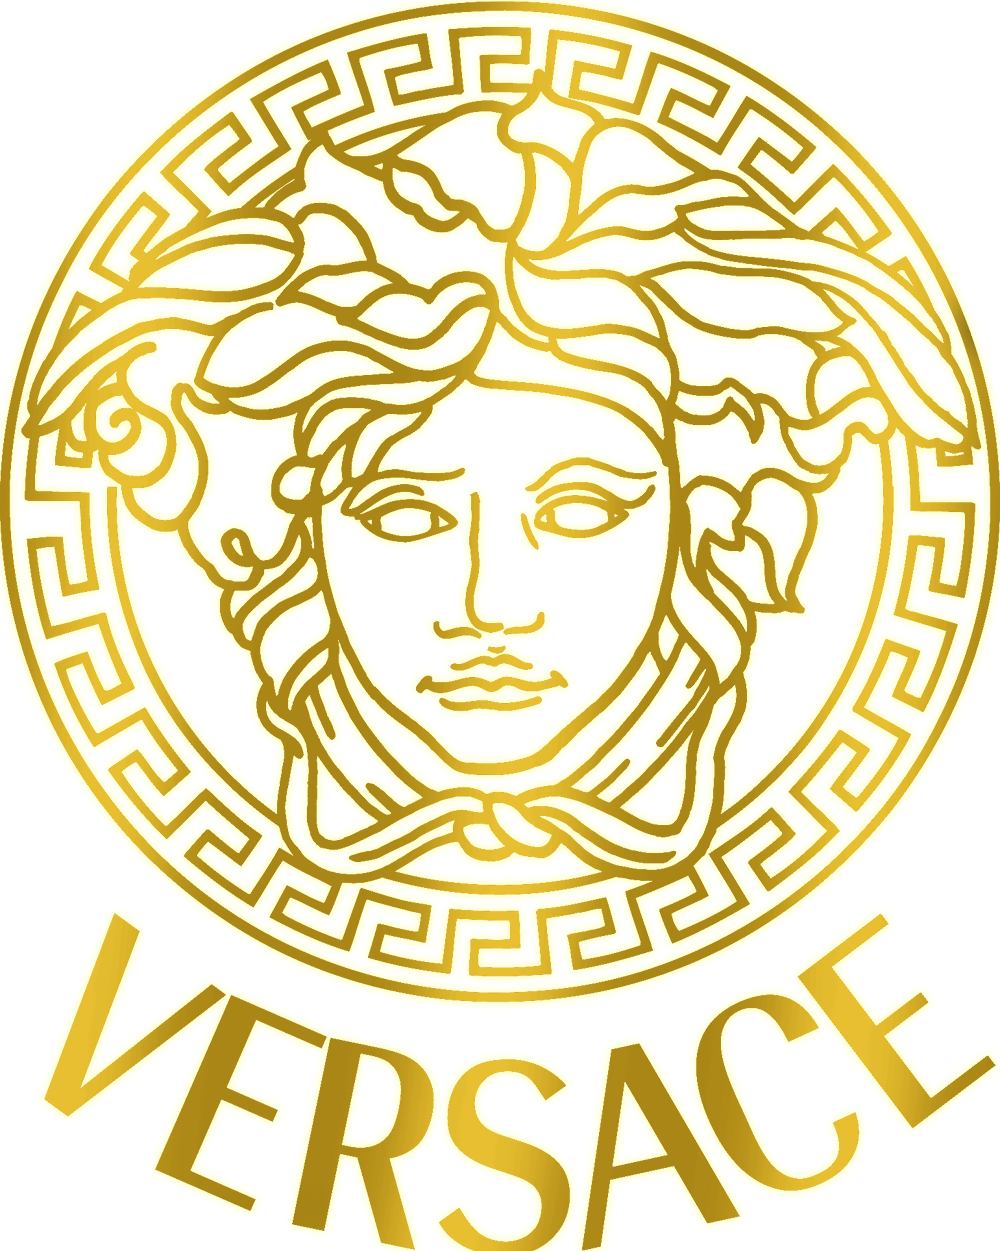 Versace iphone wallpaper tumblr - Versace Logo Is An Italian Fashion Brand It Belongs To The Category Of Top Brands Such As Gucci And Dolce Gabbana The Brand Was In 1978 Founded By